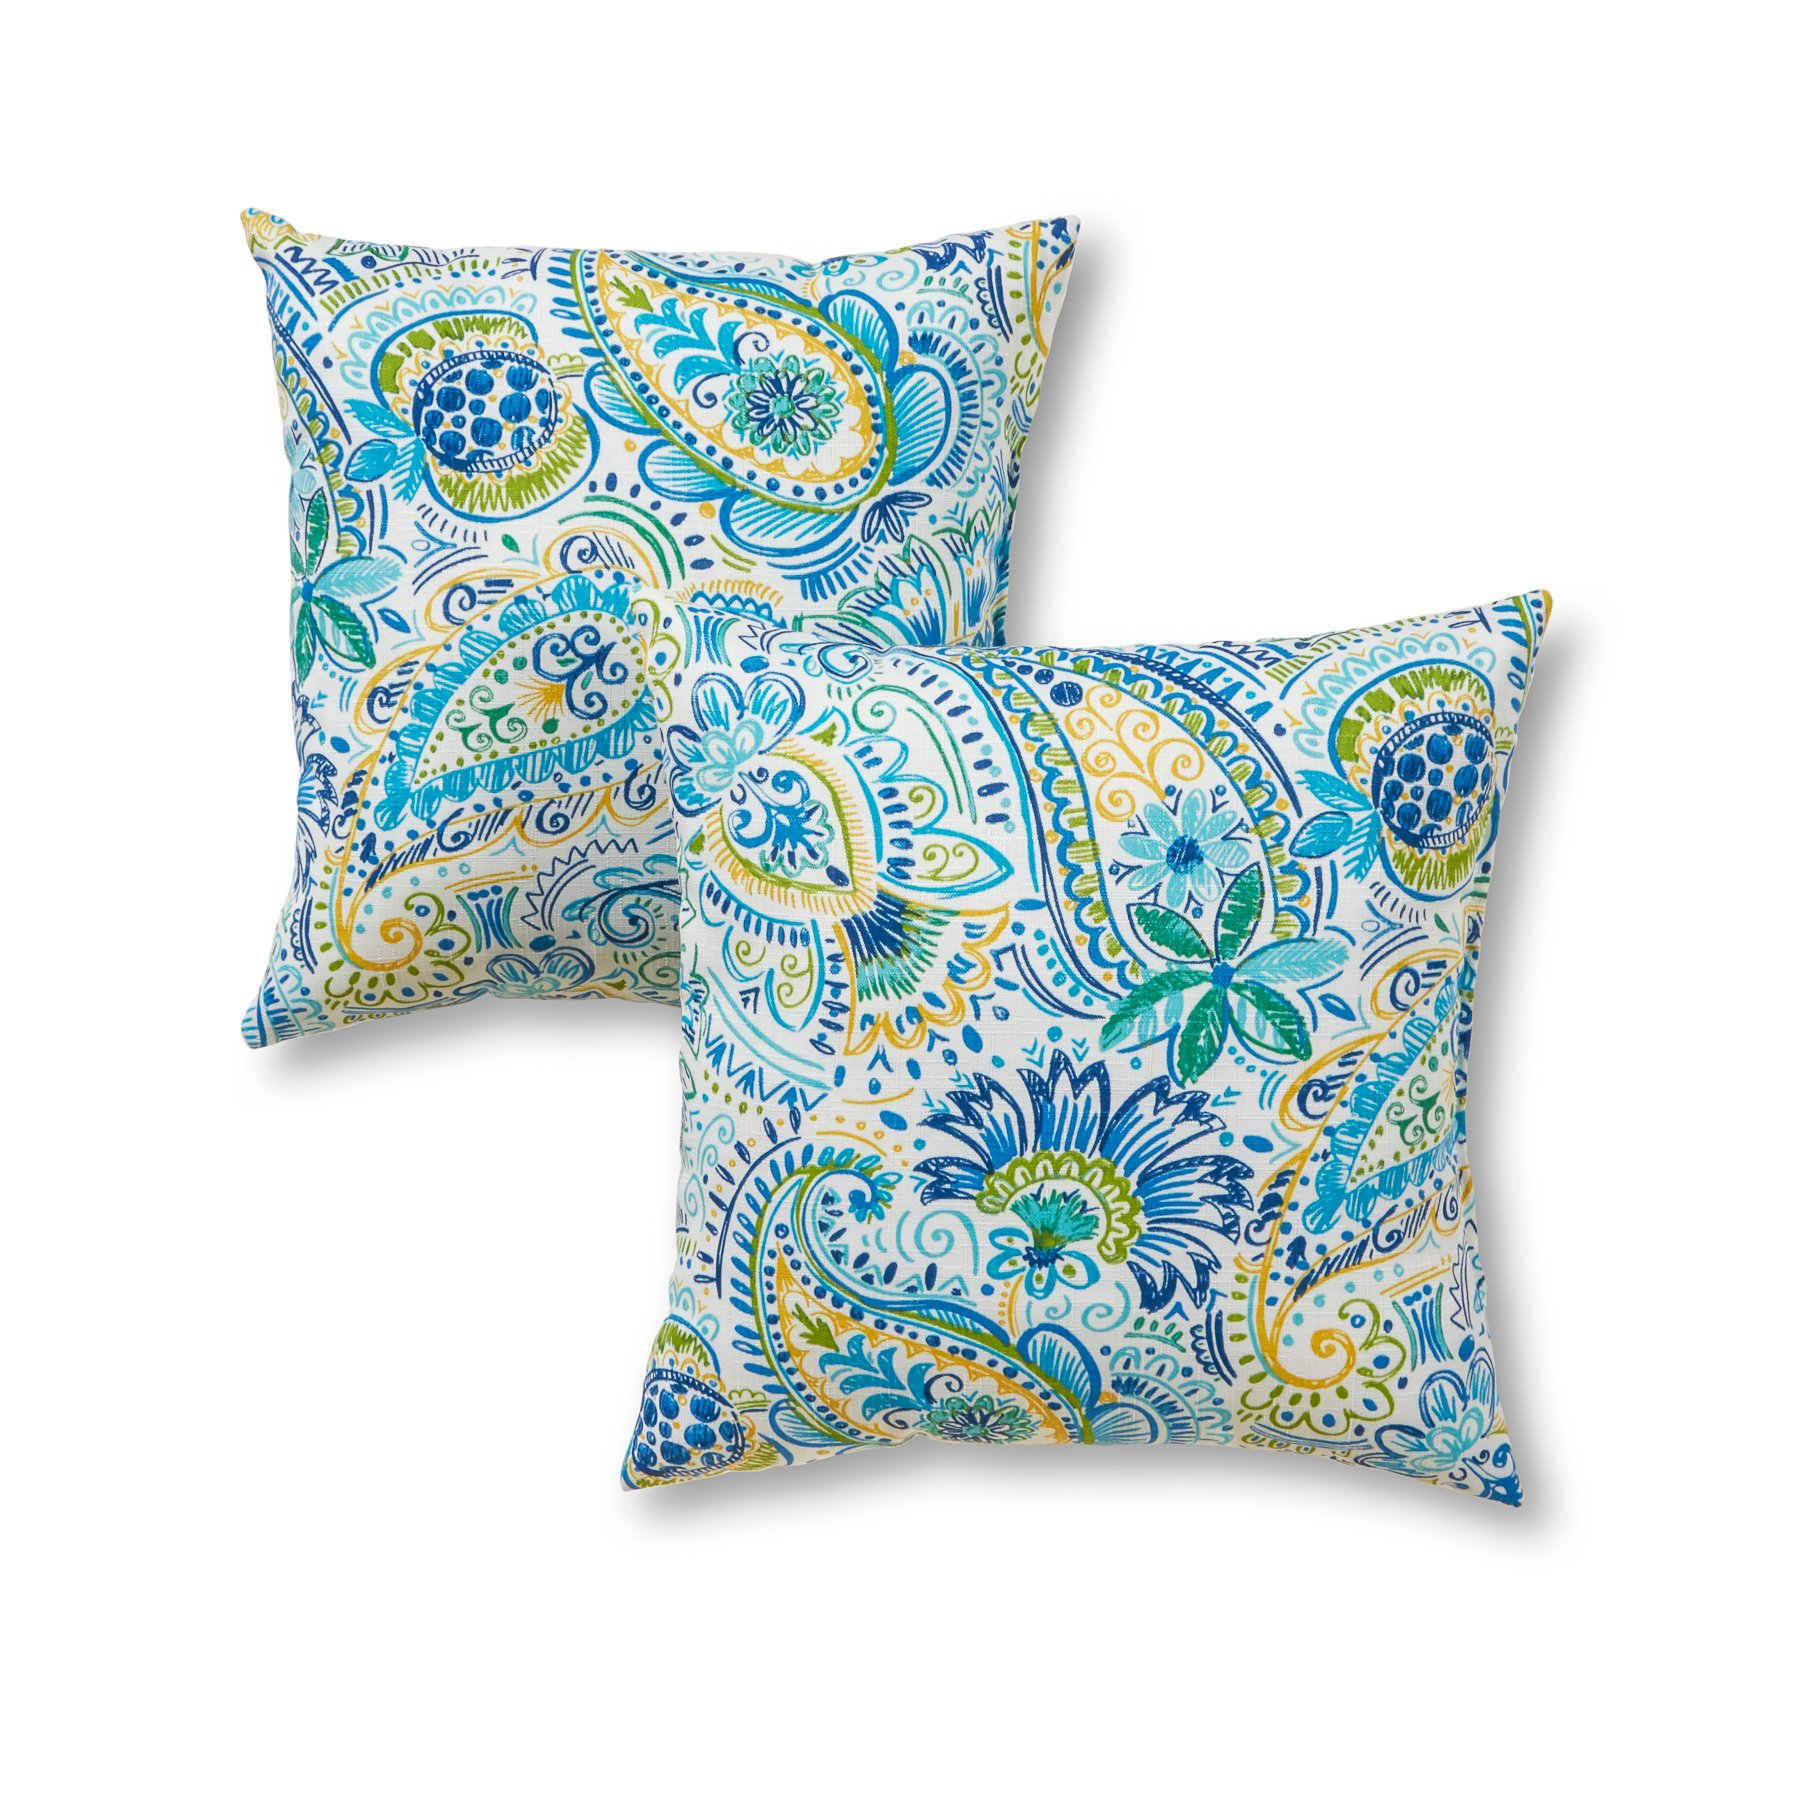 Greendale Home Fashions 17'' Outdoor Accent Pillows in Painted Paisley (Set of 2), Baltic